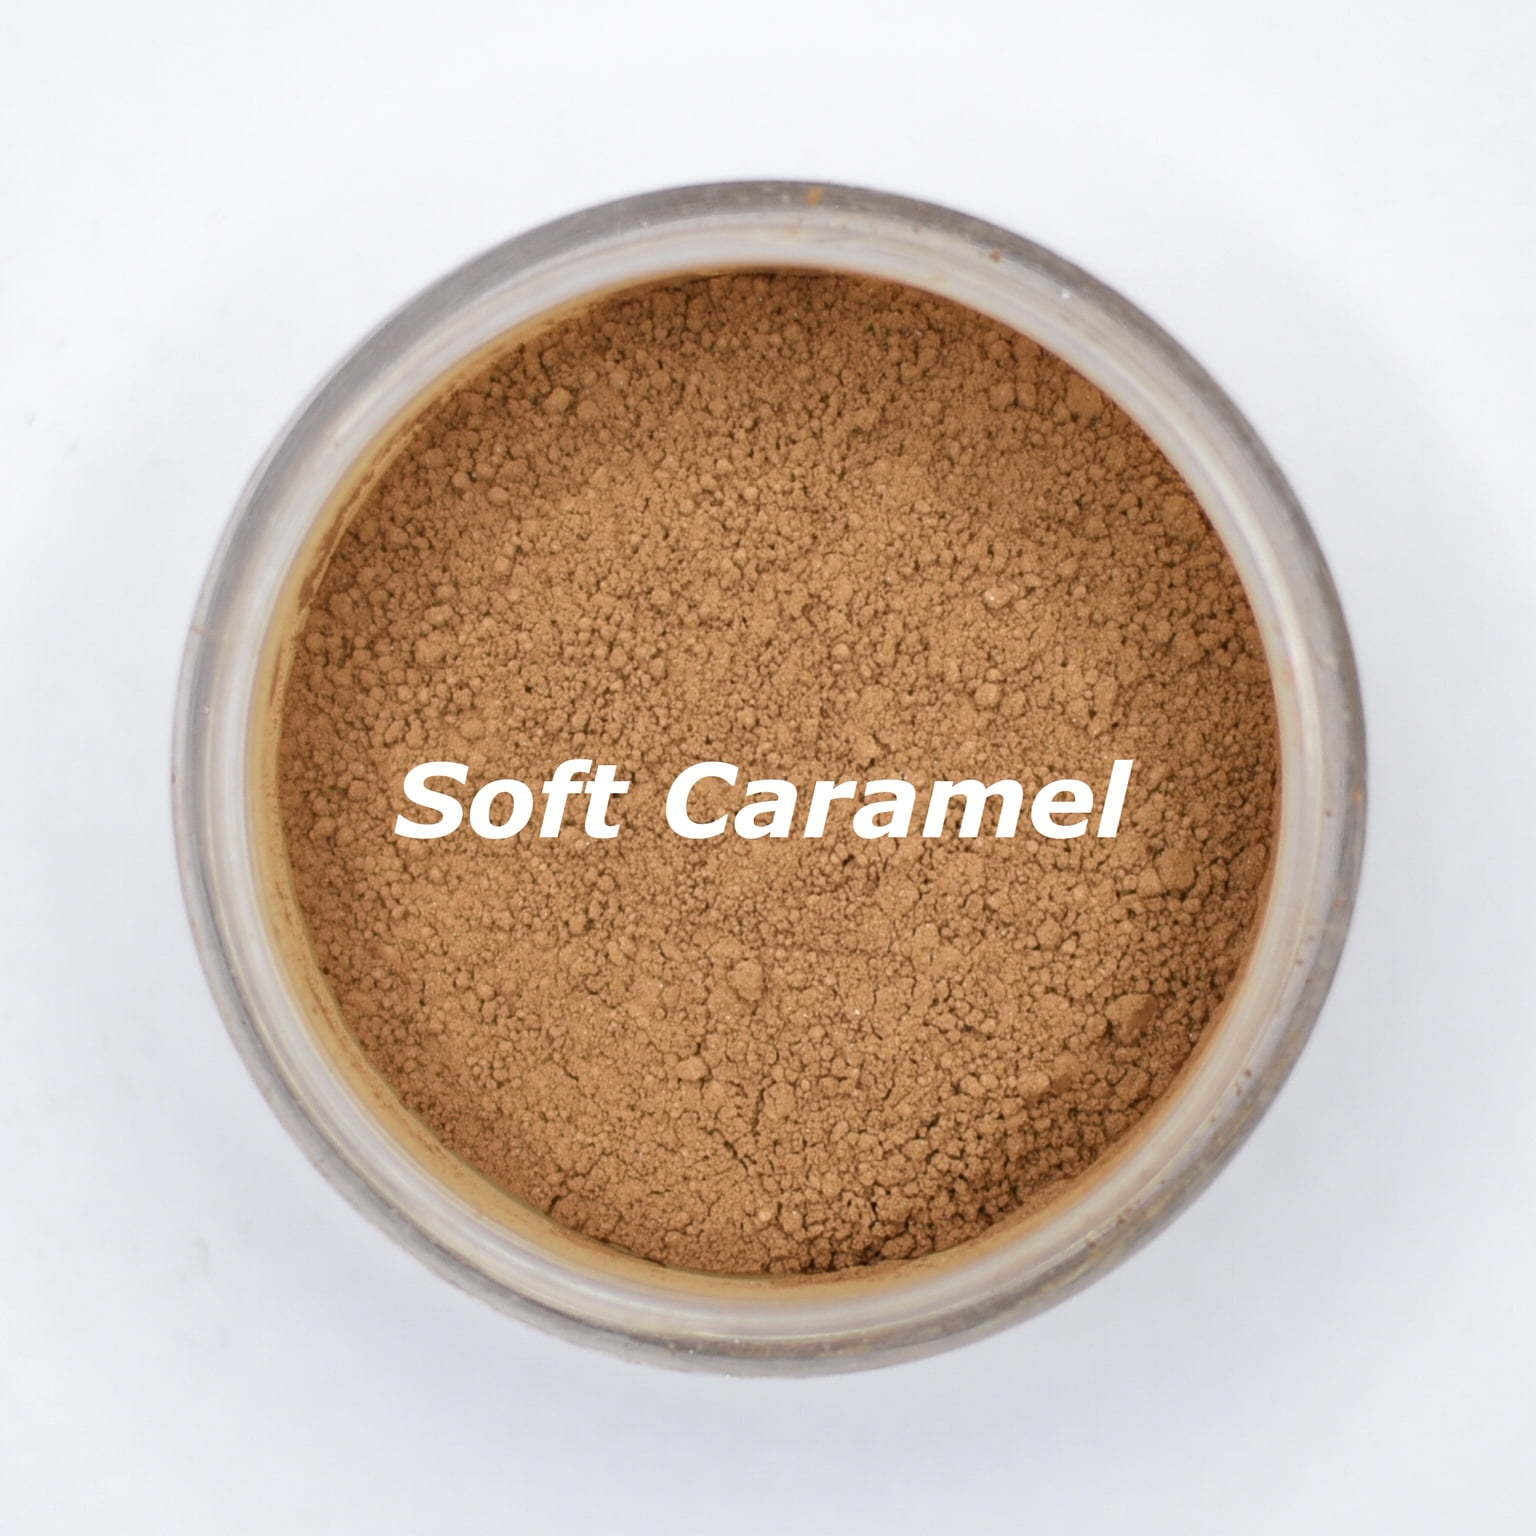 soft caramel foundation shade